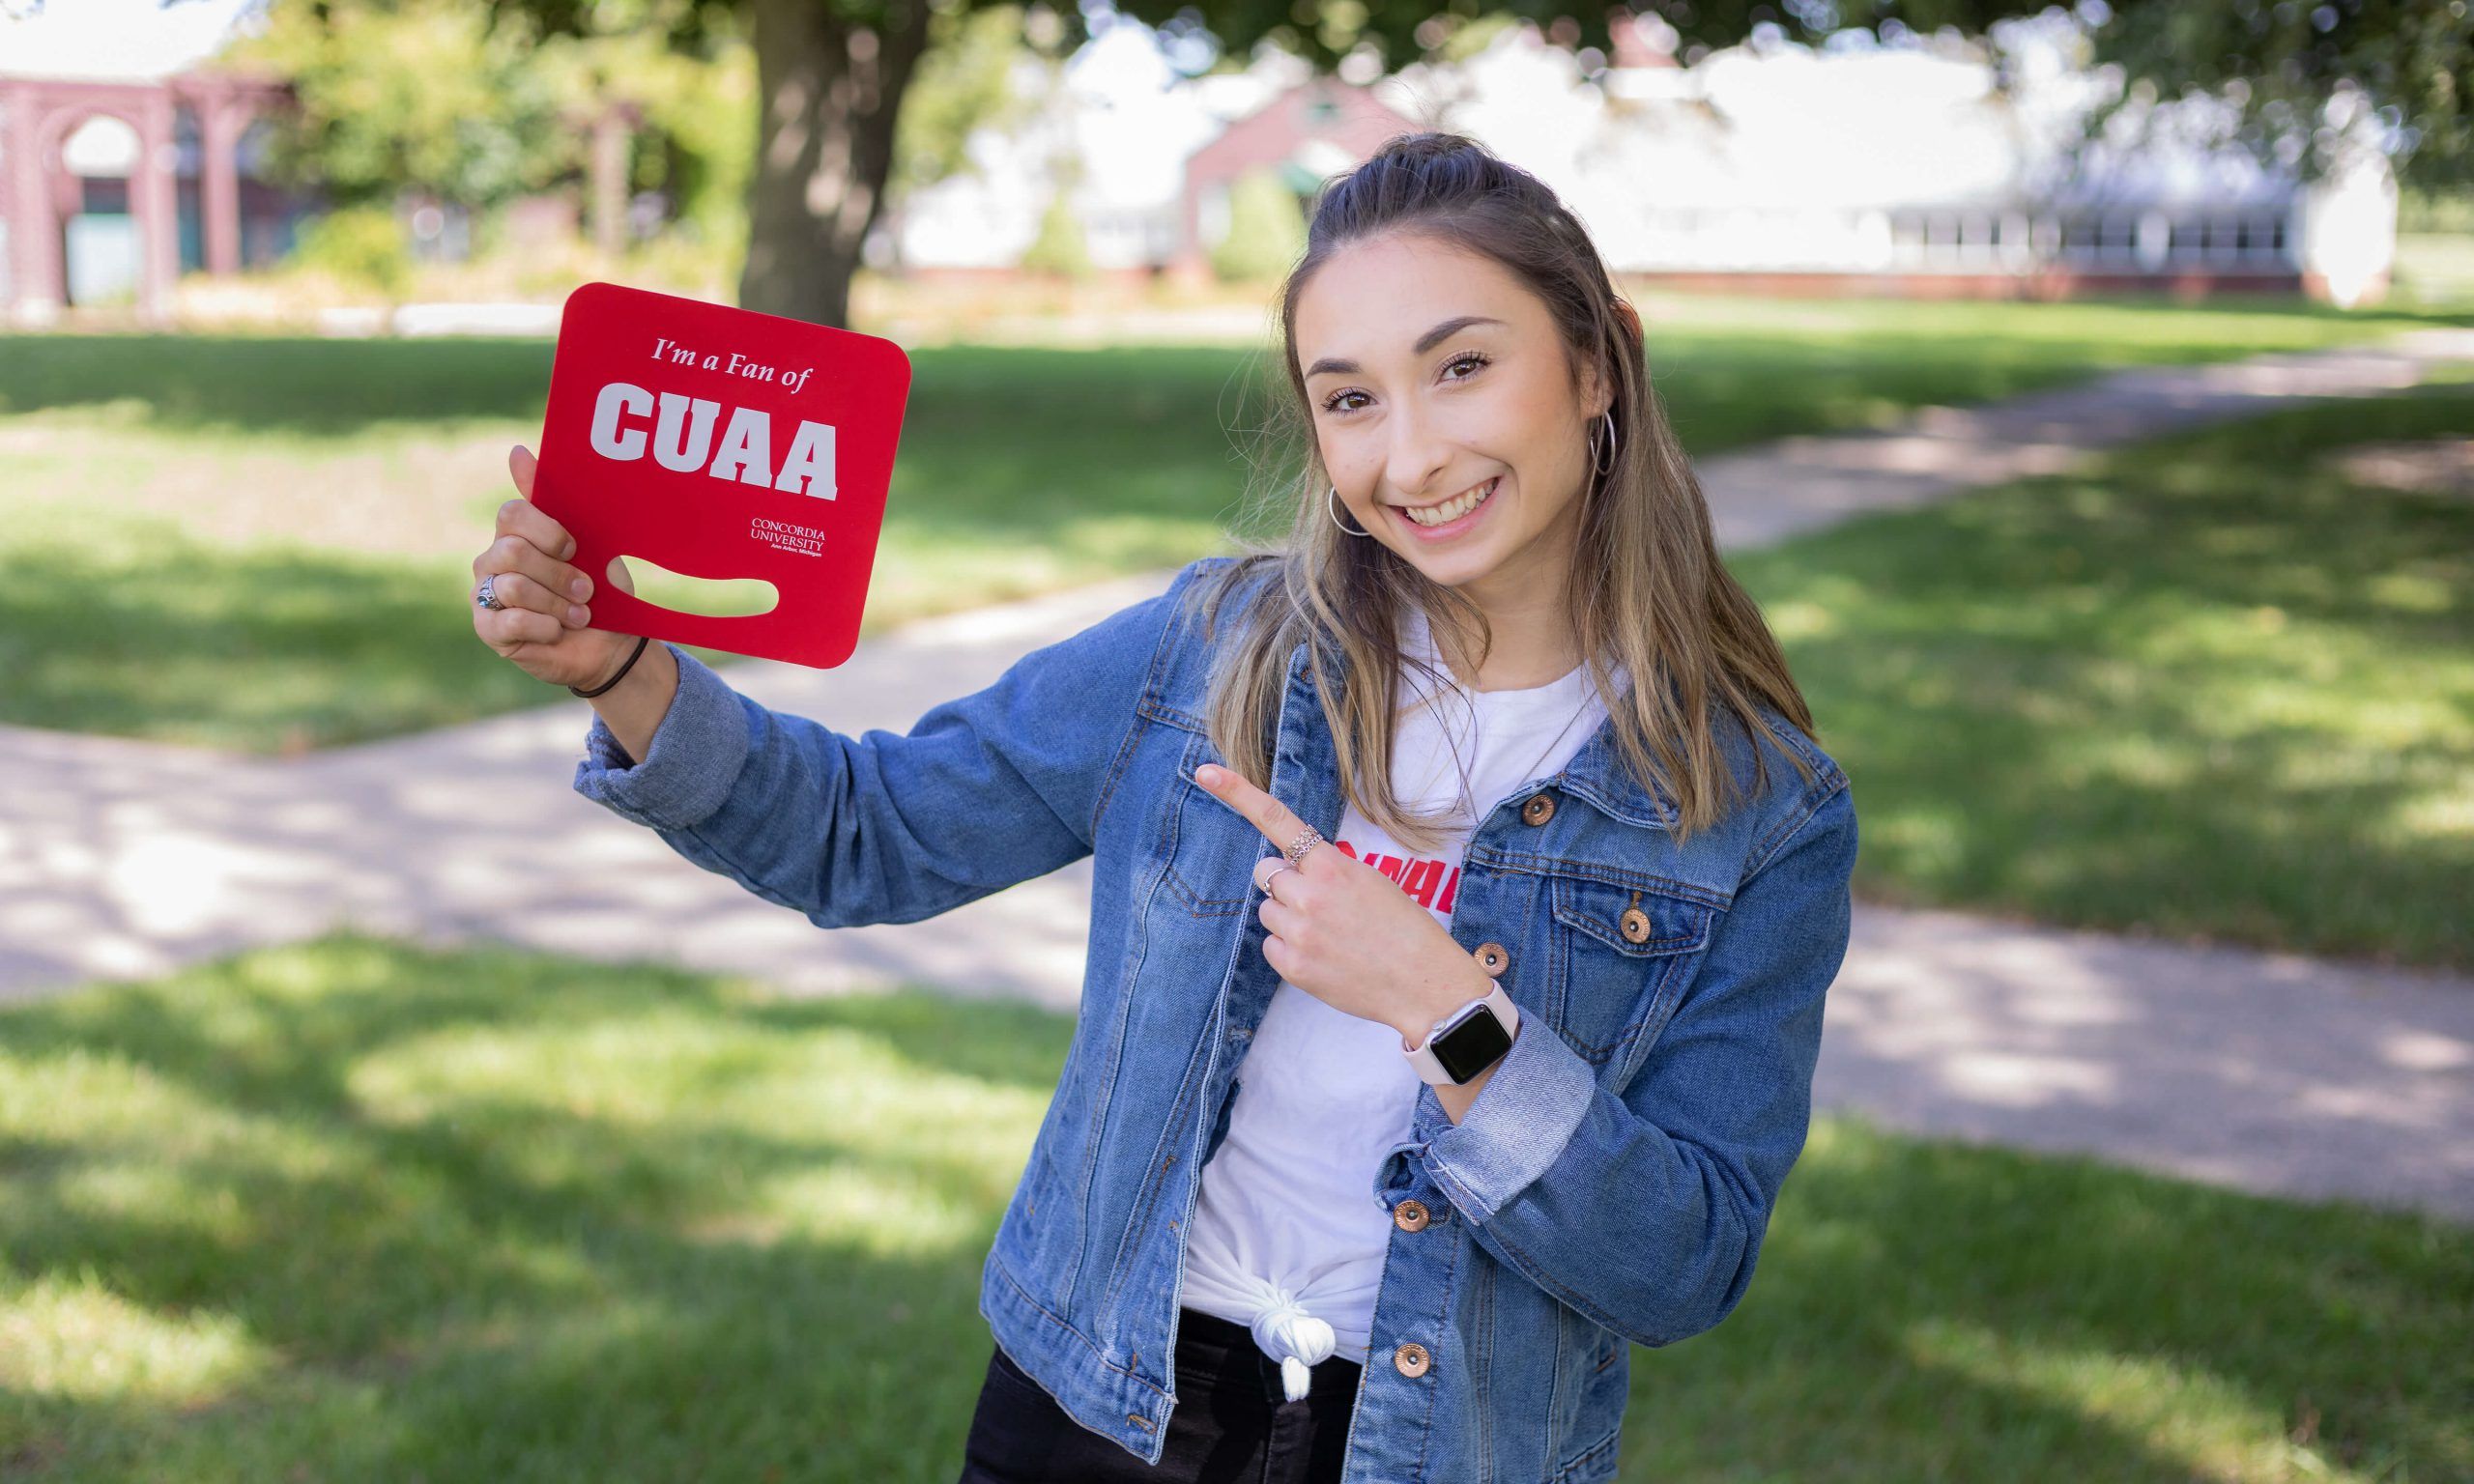 The latest in new degree programs at CUAA